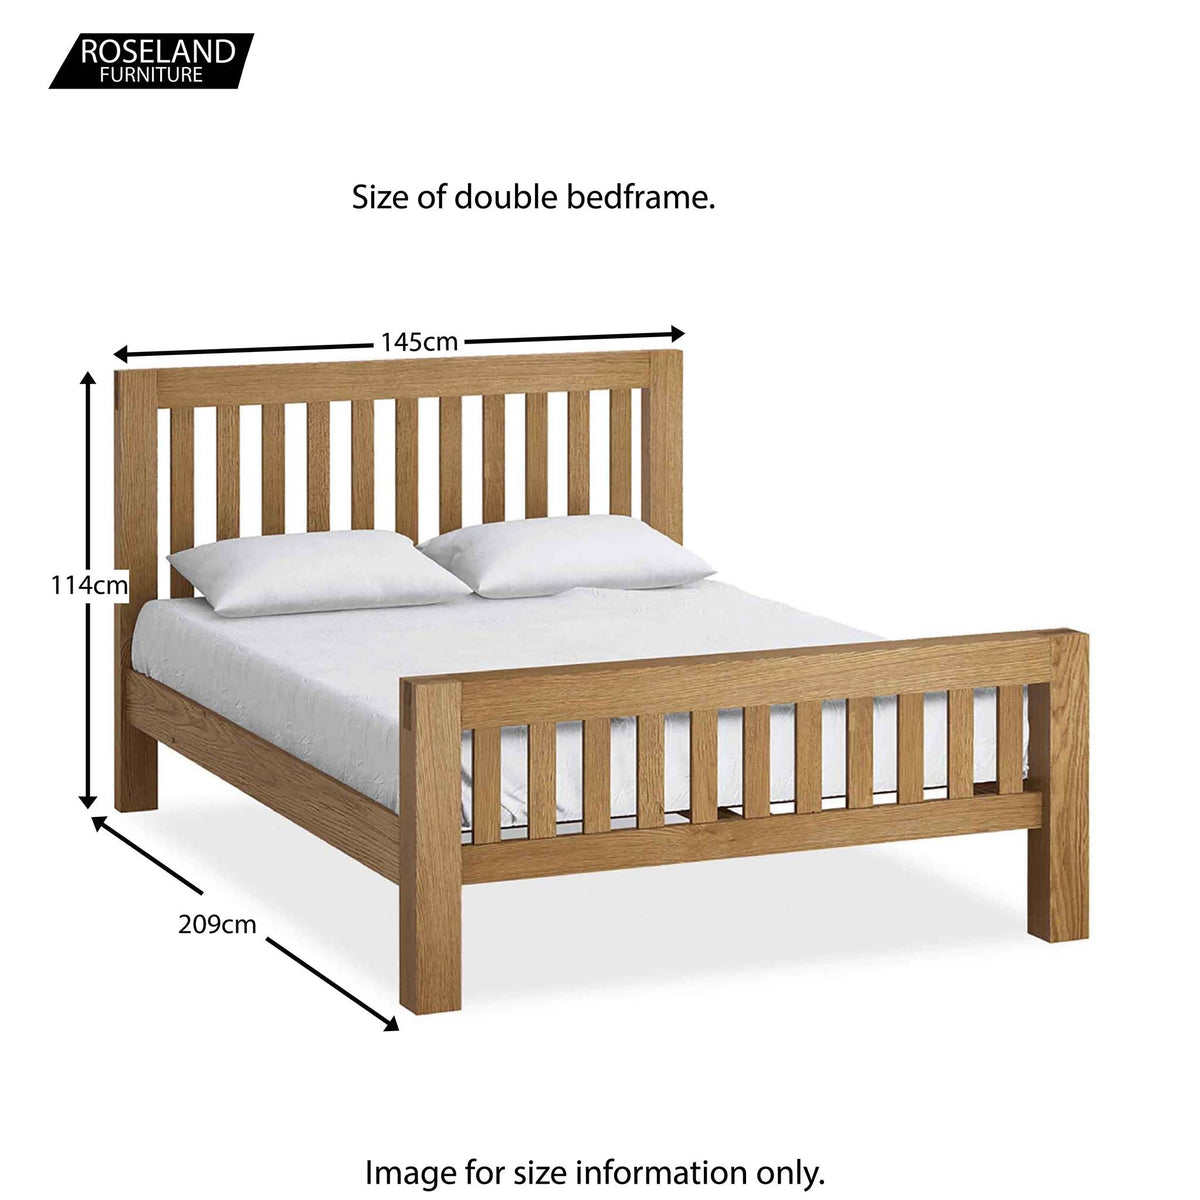 Abbey Double Bed Frame - Size Guide